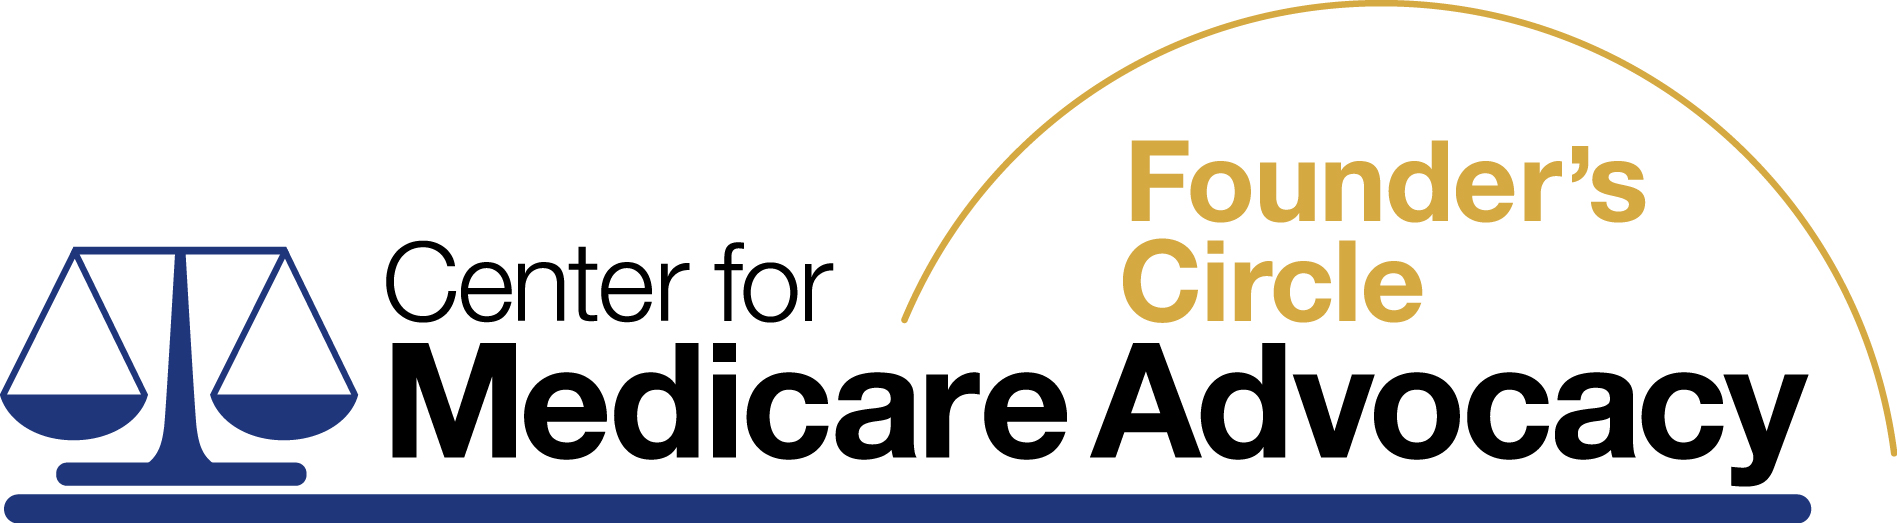 Center for Medicare Advocacy Founder's Circle